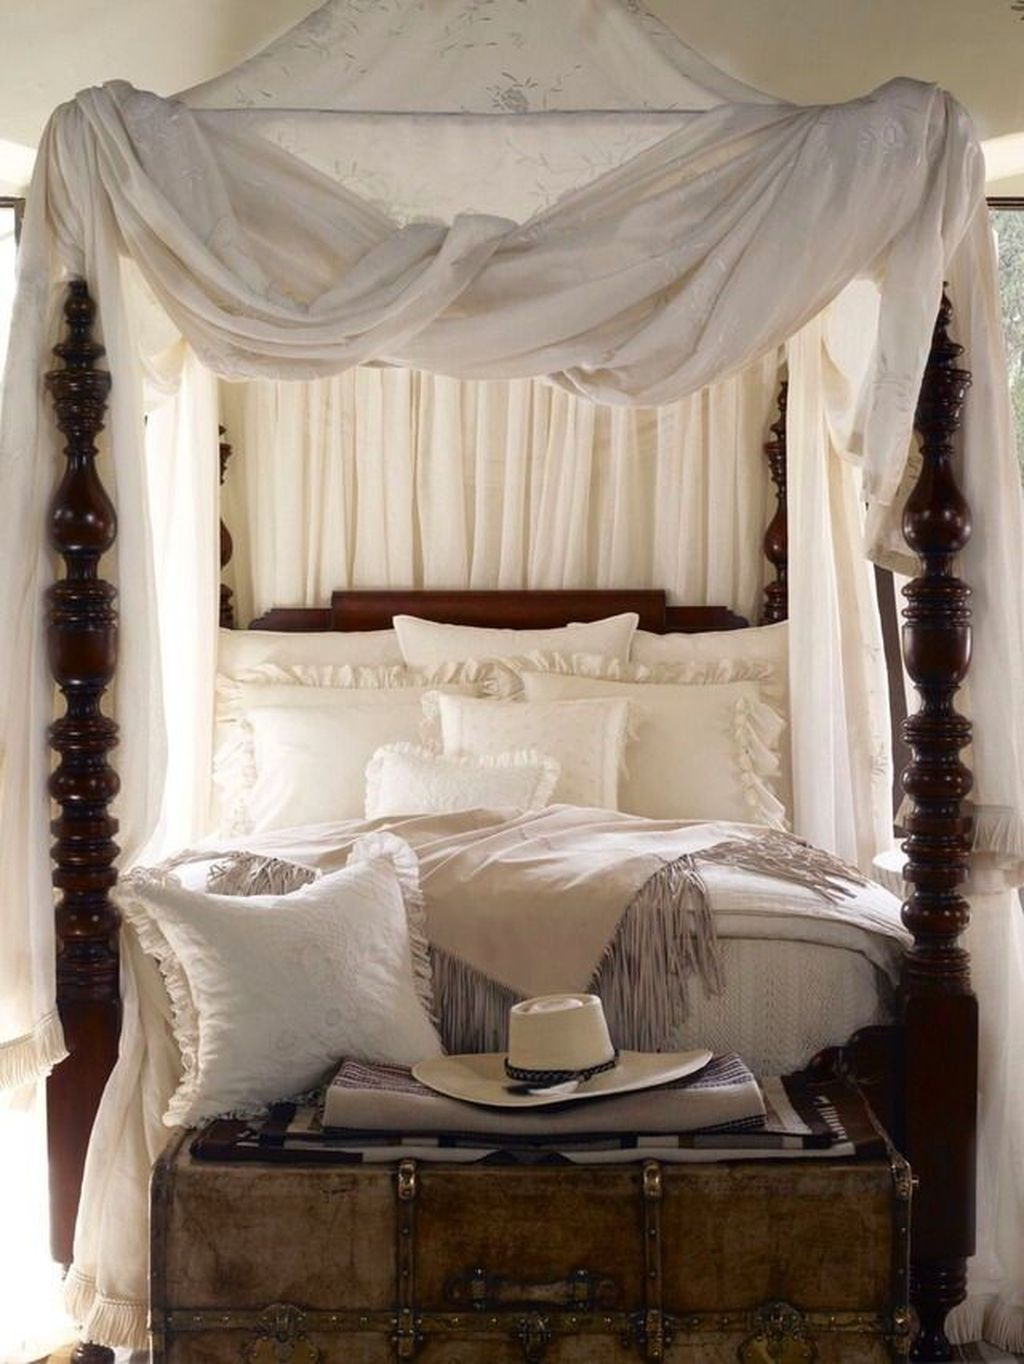 Lovely Romantic Canopy Bed Design Ideas For Your Bedroom 13